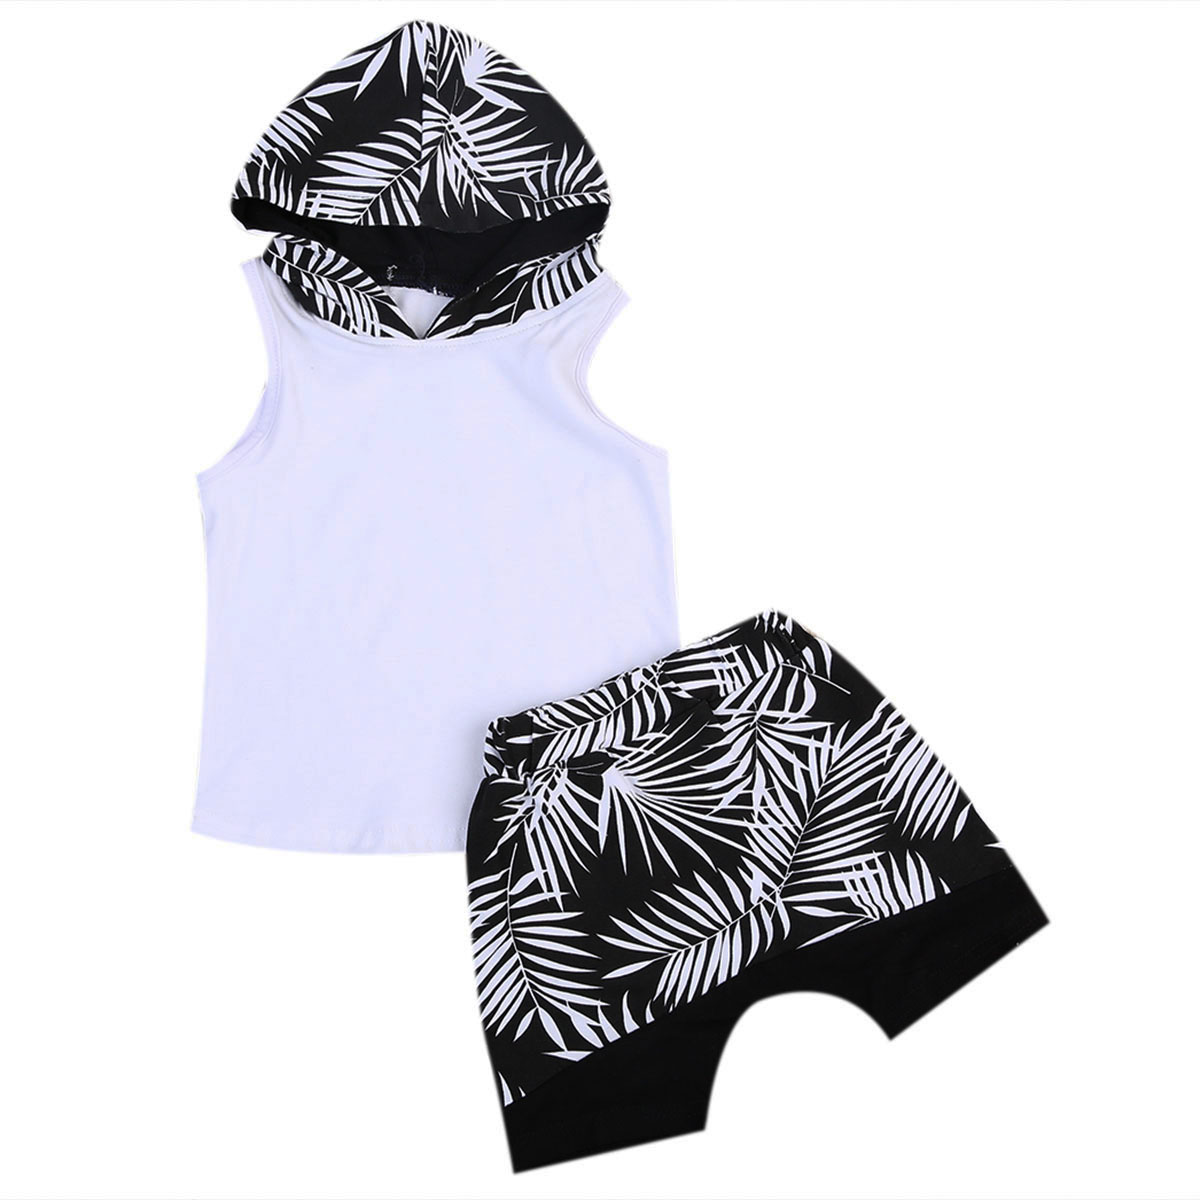 2017 Summer Children Boy Clothes Set Sleeveless Hooded Vest T-shirt Tops+Shorts Hot Pant 2PCS Toddler Kids Clothing 2017 cute kids girl clothing set off shoulder lace white t shirt tops denim pant jeans 2pcs children clothes 2 7y